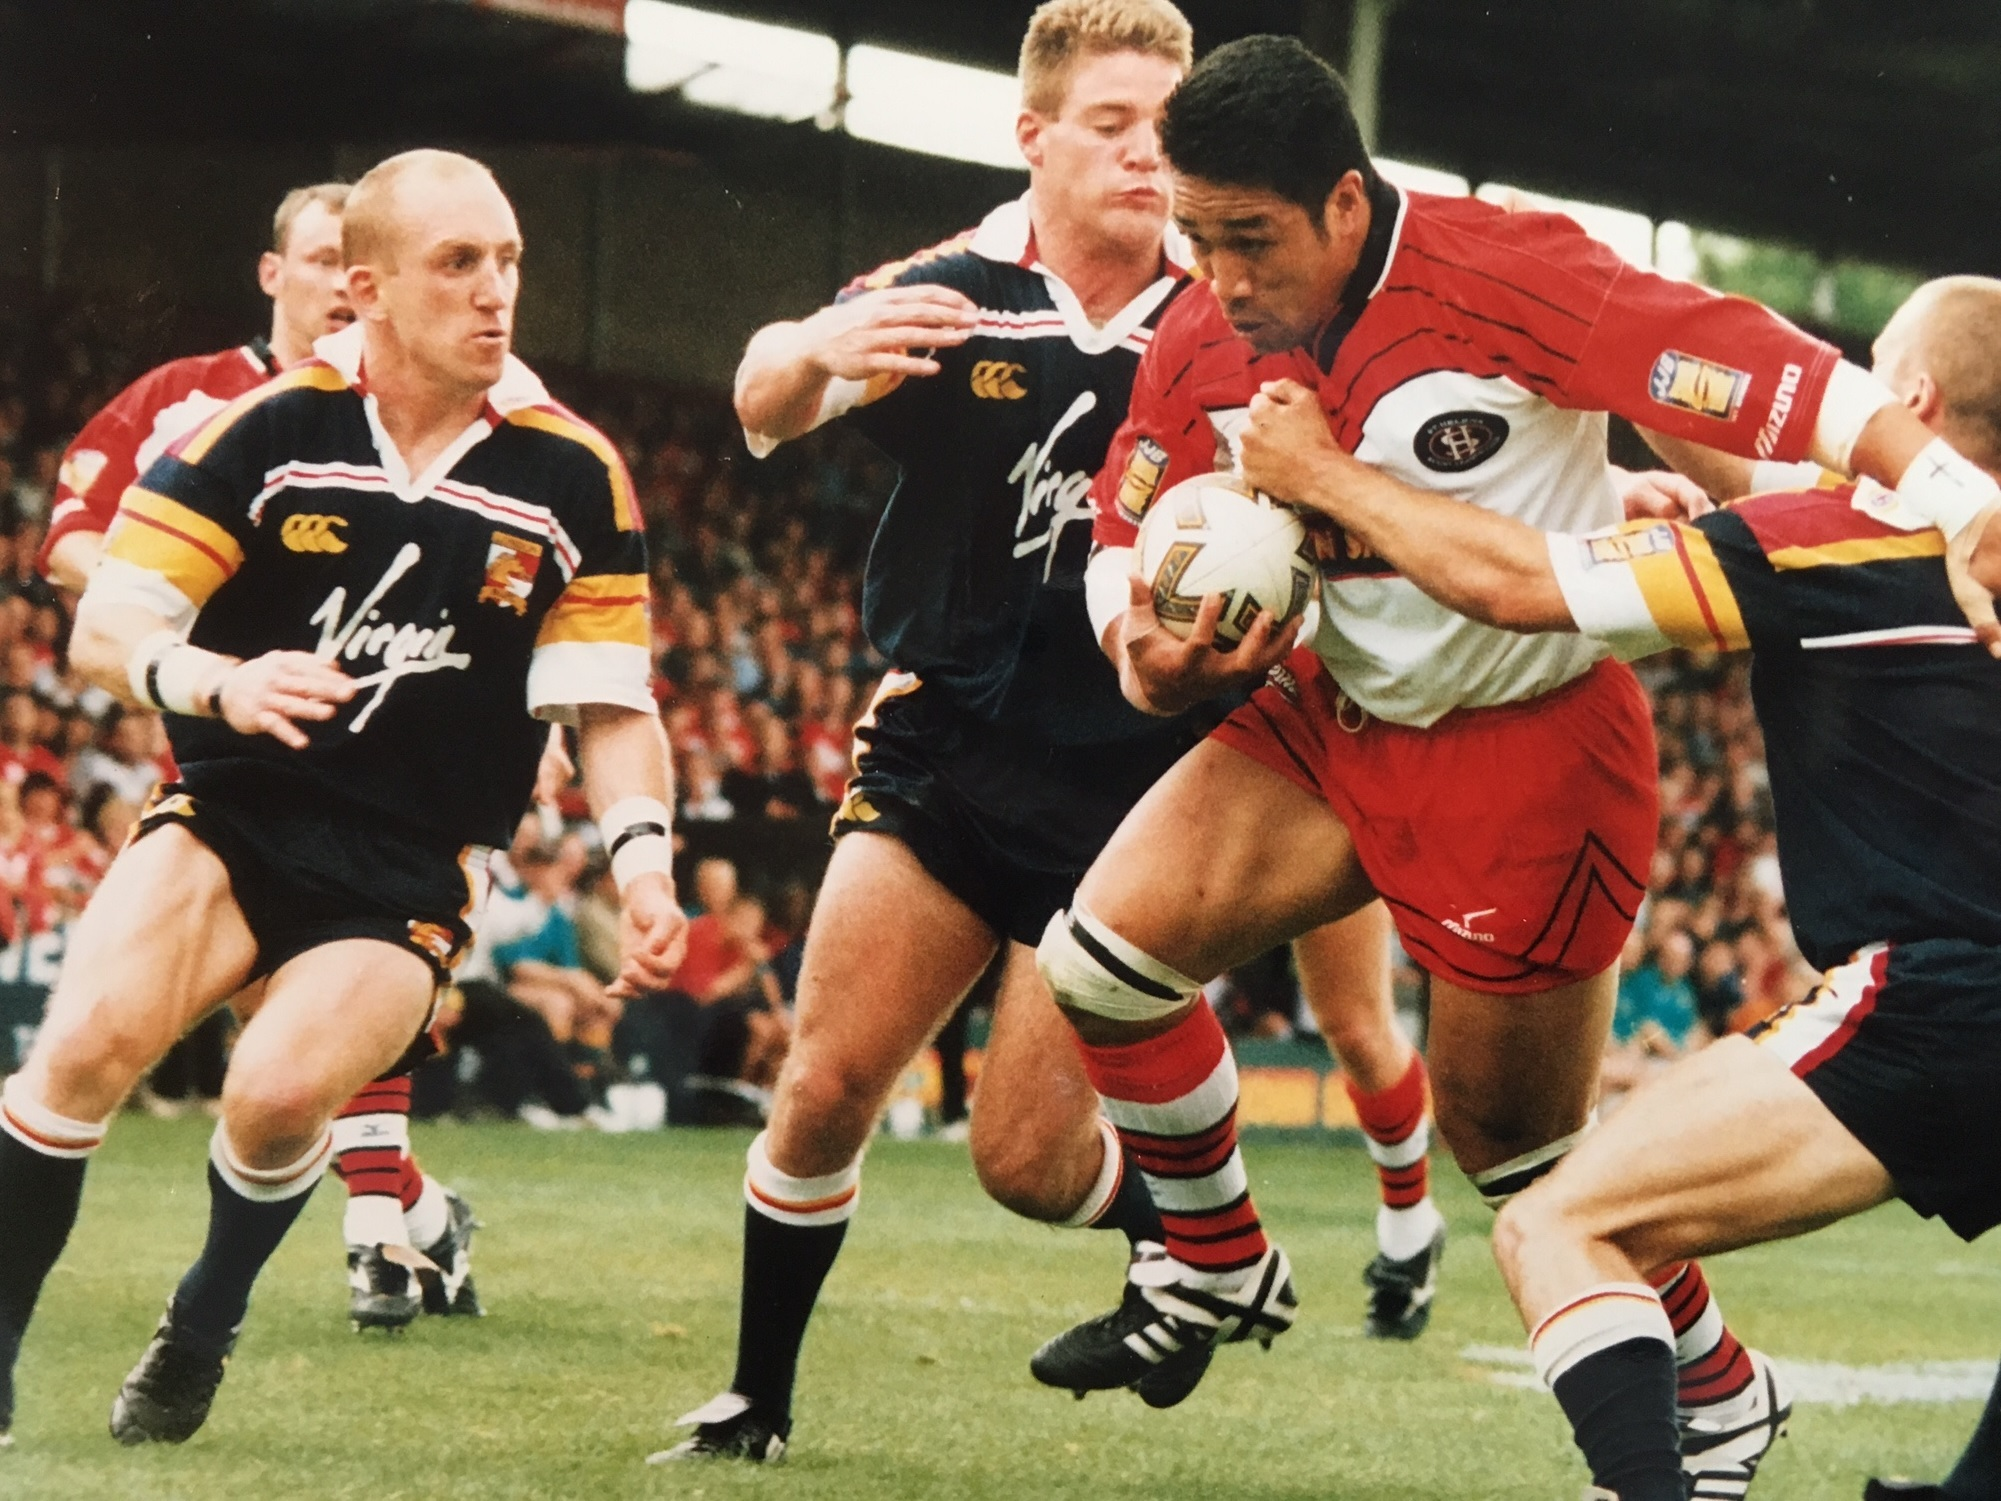 Apollo Perelini in action for Saints against London in 1999